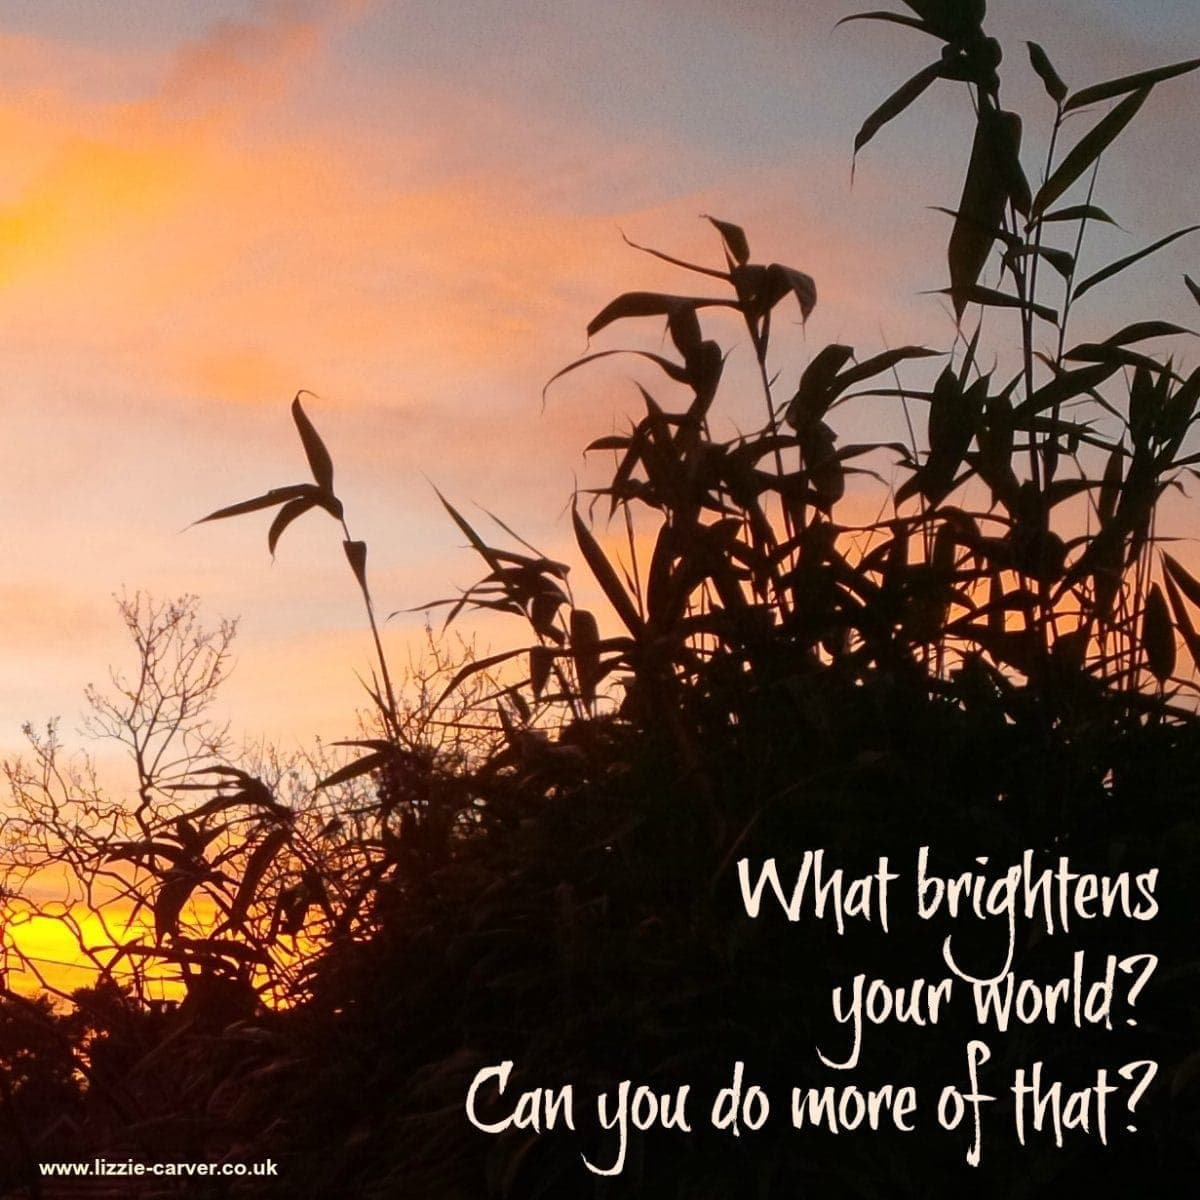 What brightens your world? Lizzie Carver, Reiki & NLP